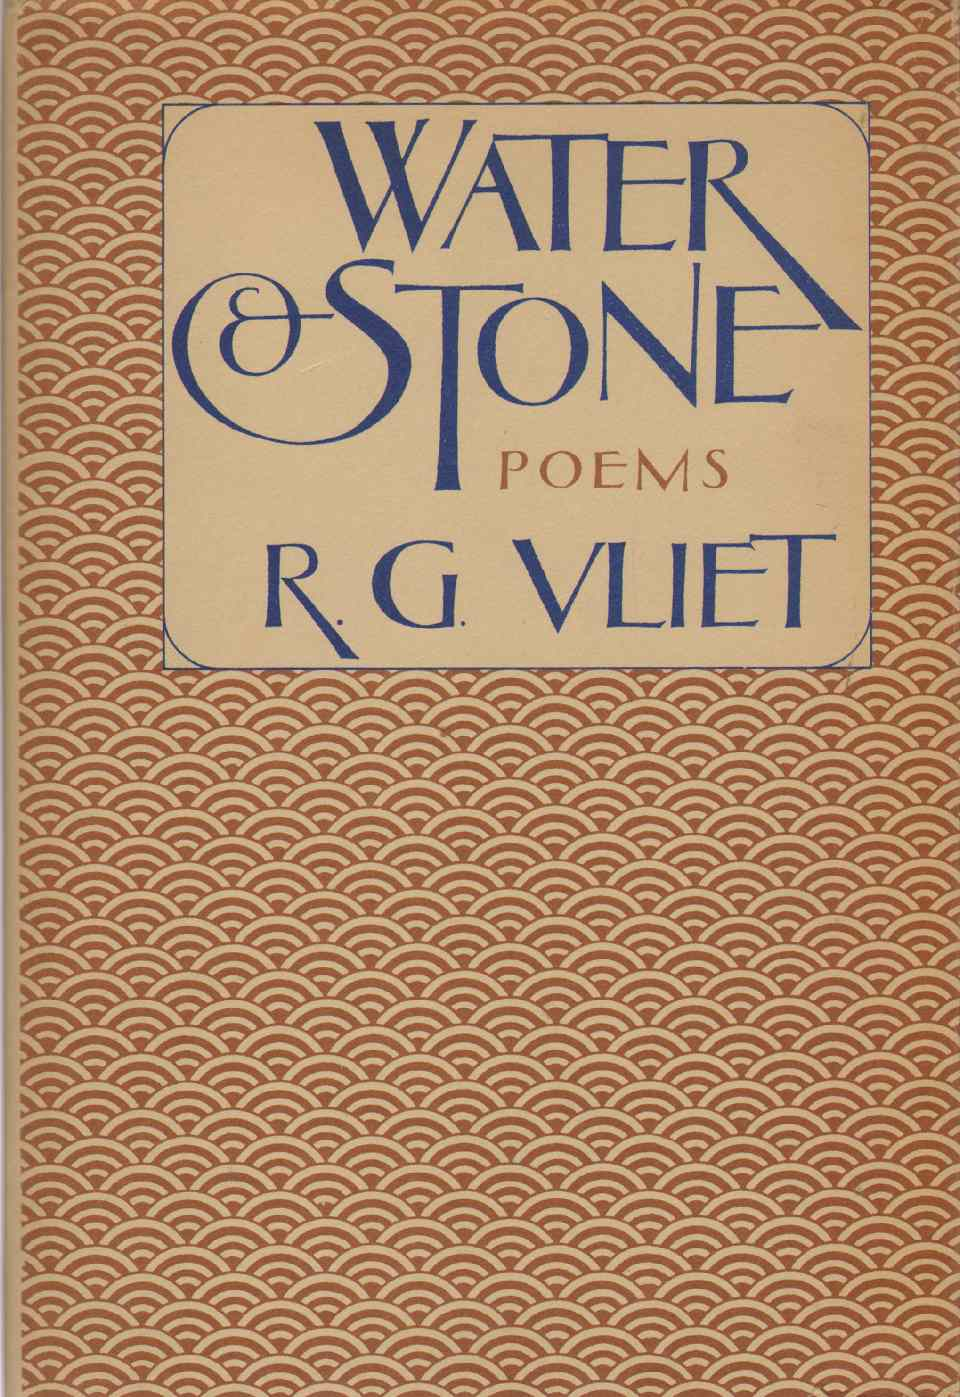 WATER AND STONE Poems, Vliet, R. G